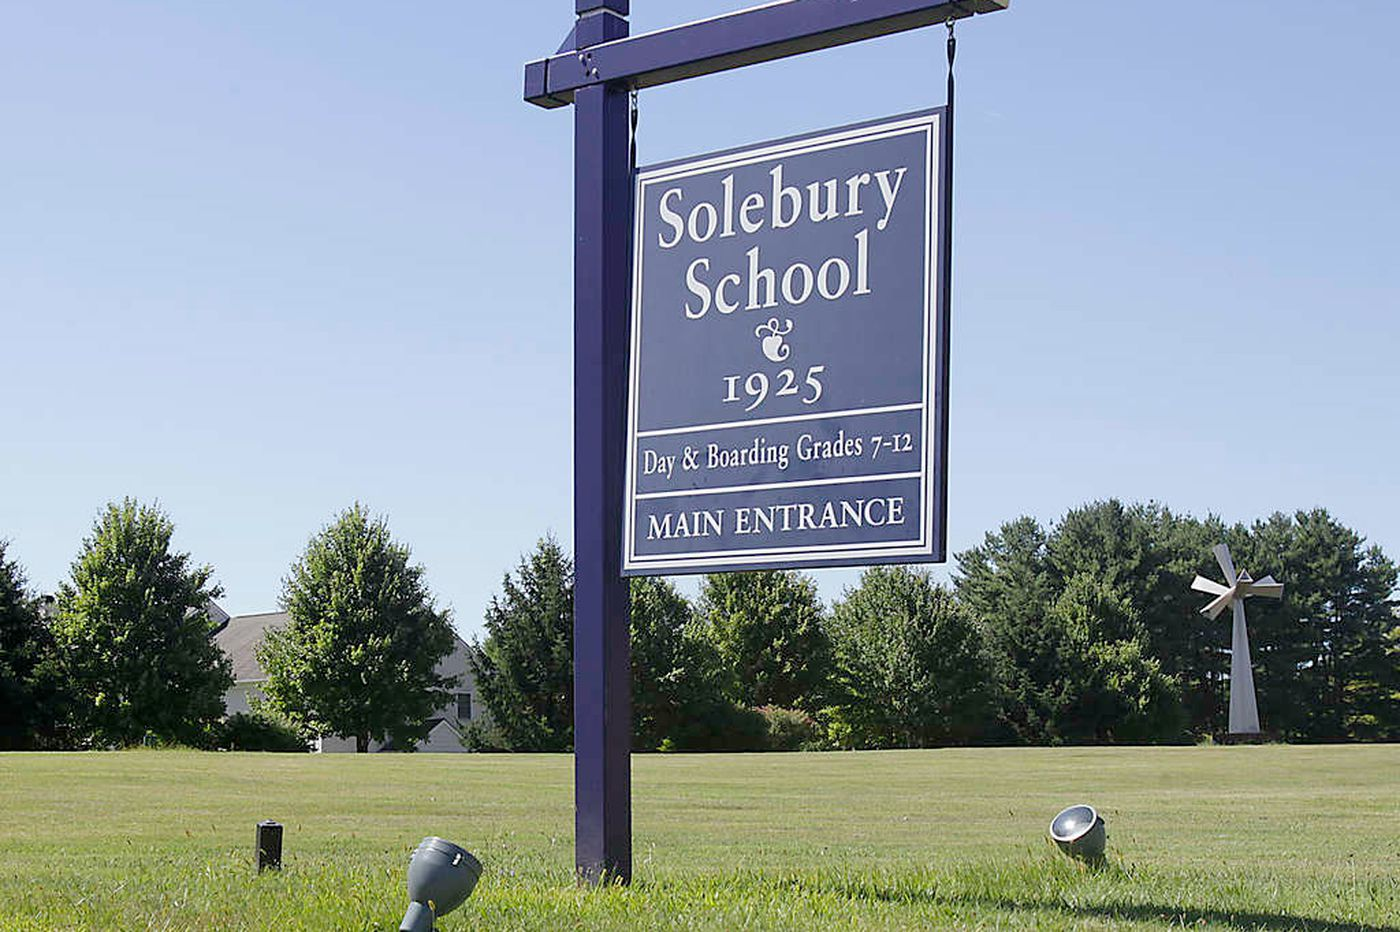 Solebury School failed to act on initial abuse rumors